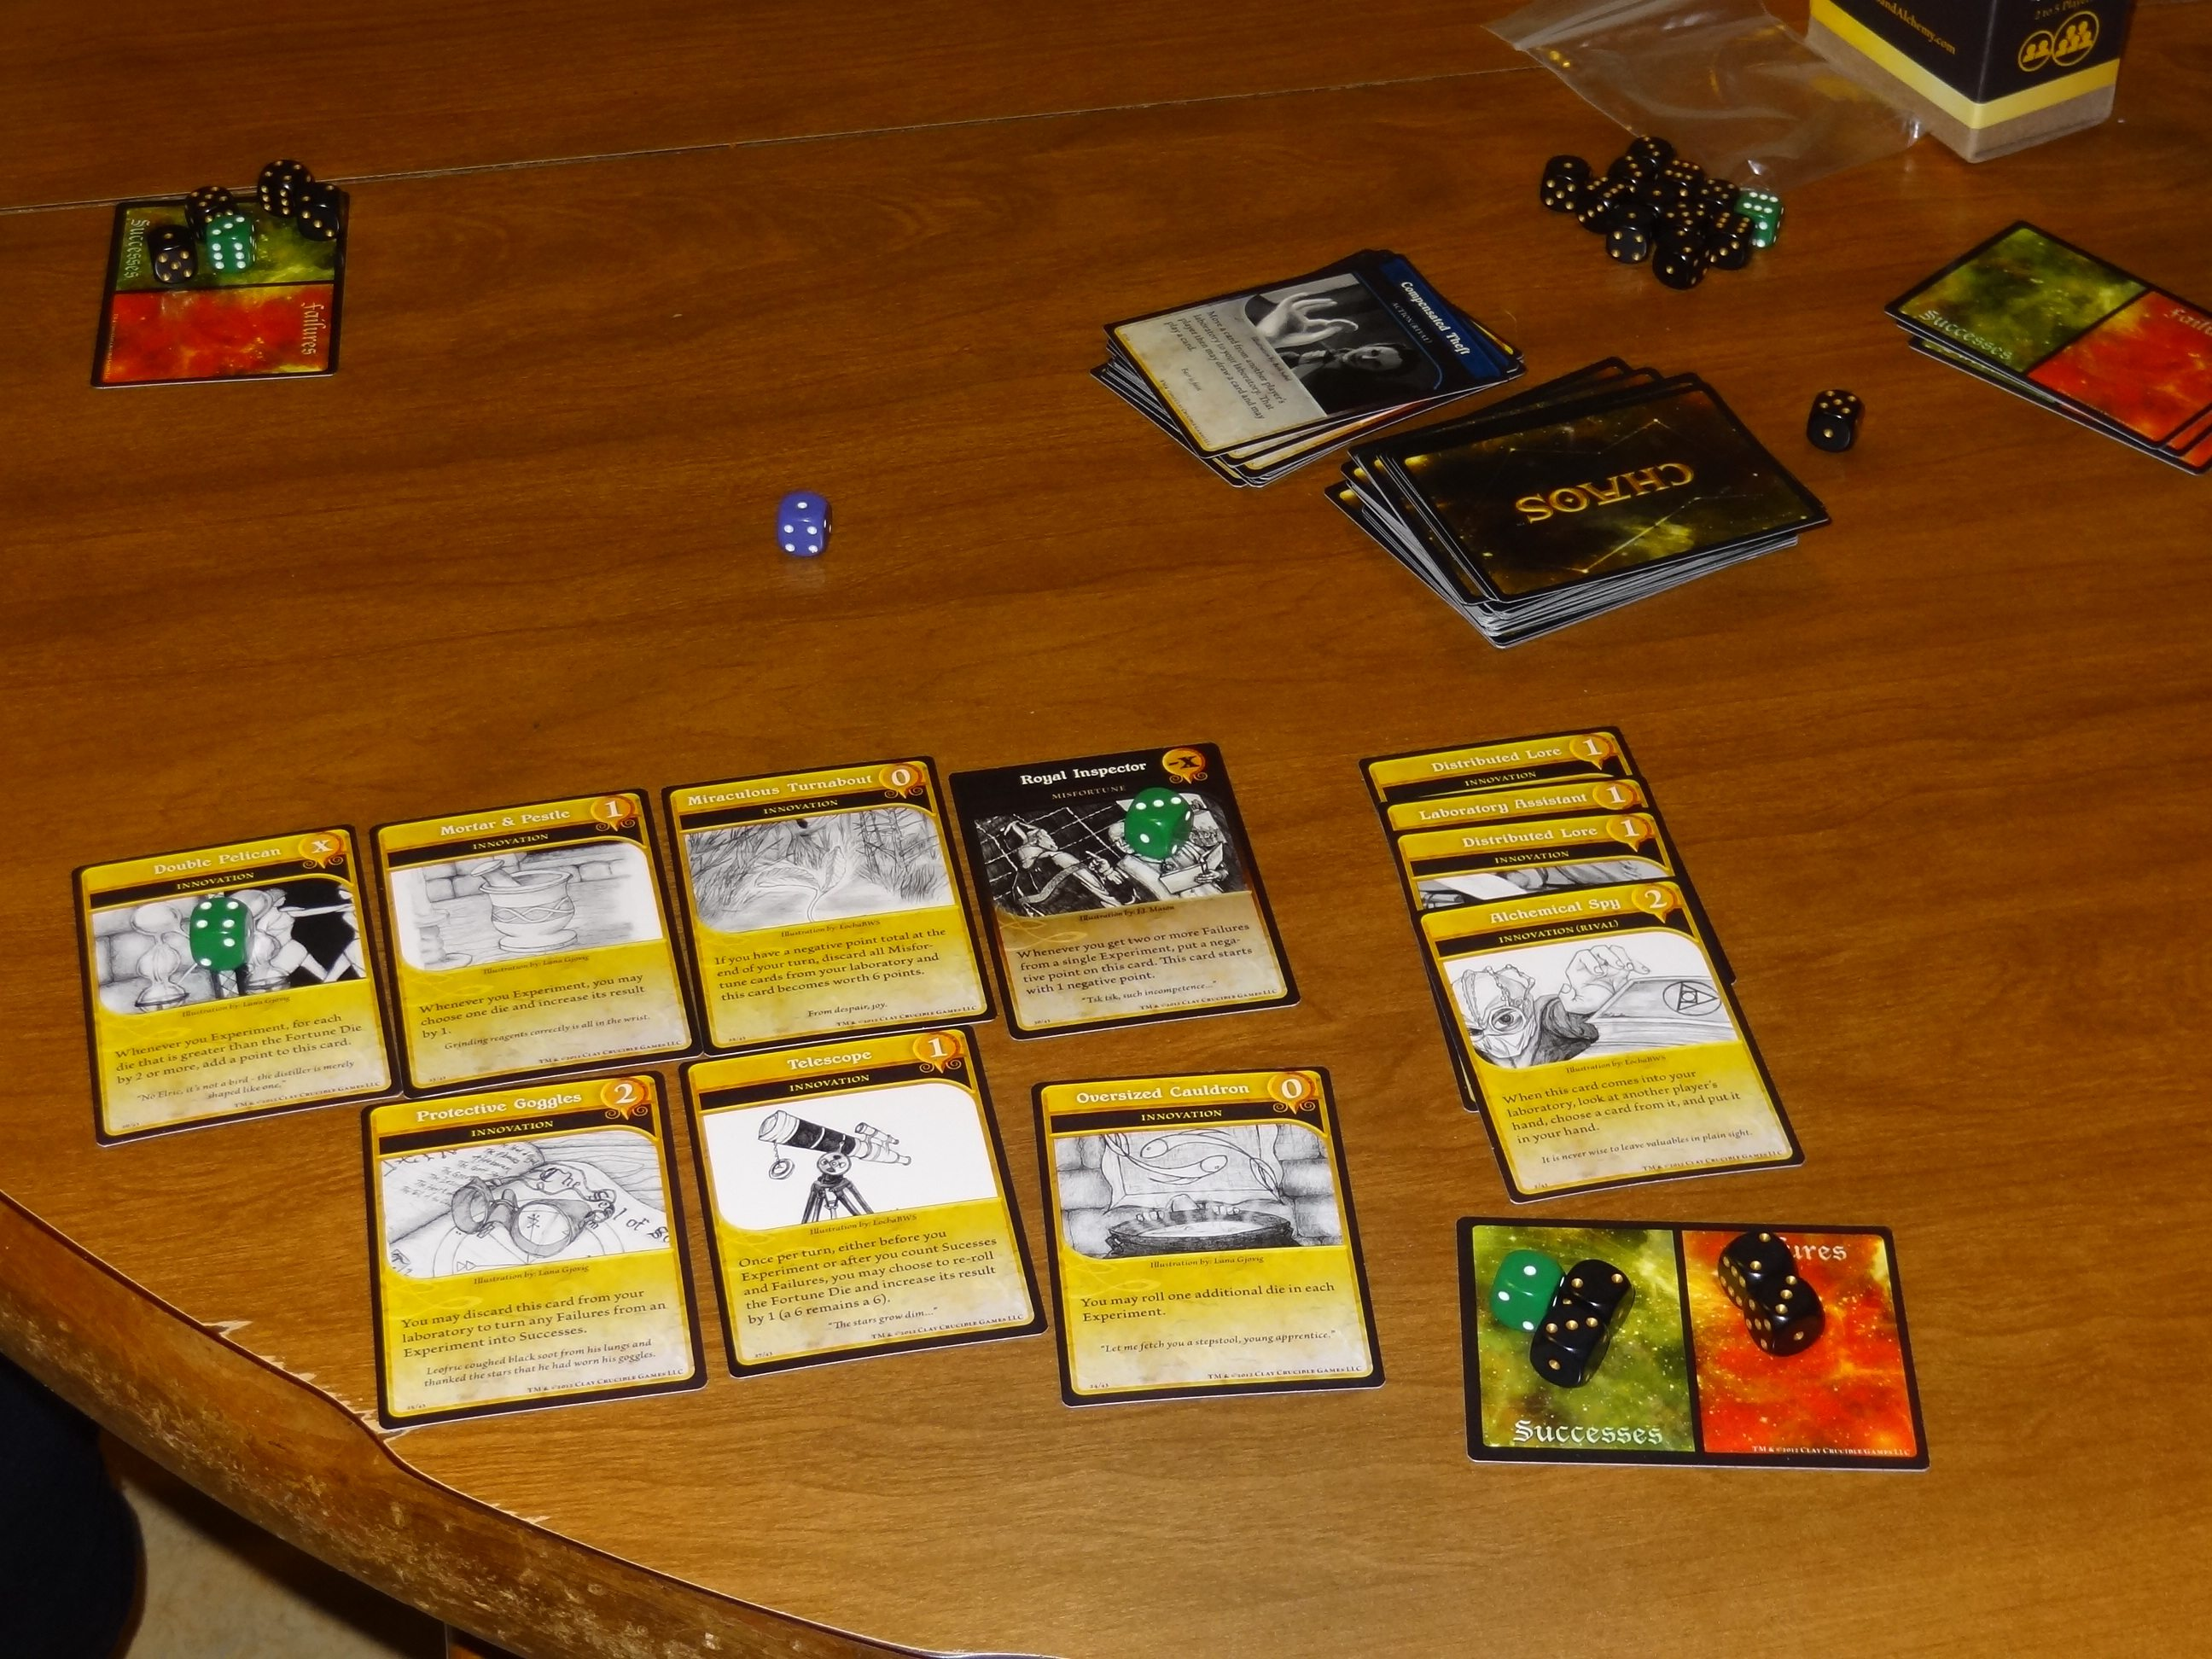 Antimatter Matters A Quantum Physics Board Game Really! from Elbowfish